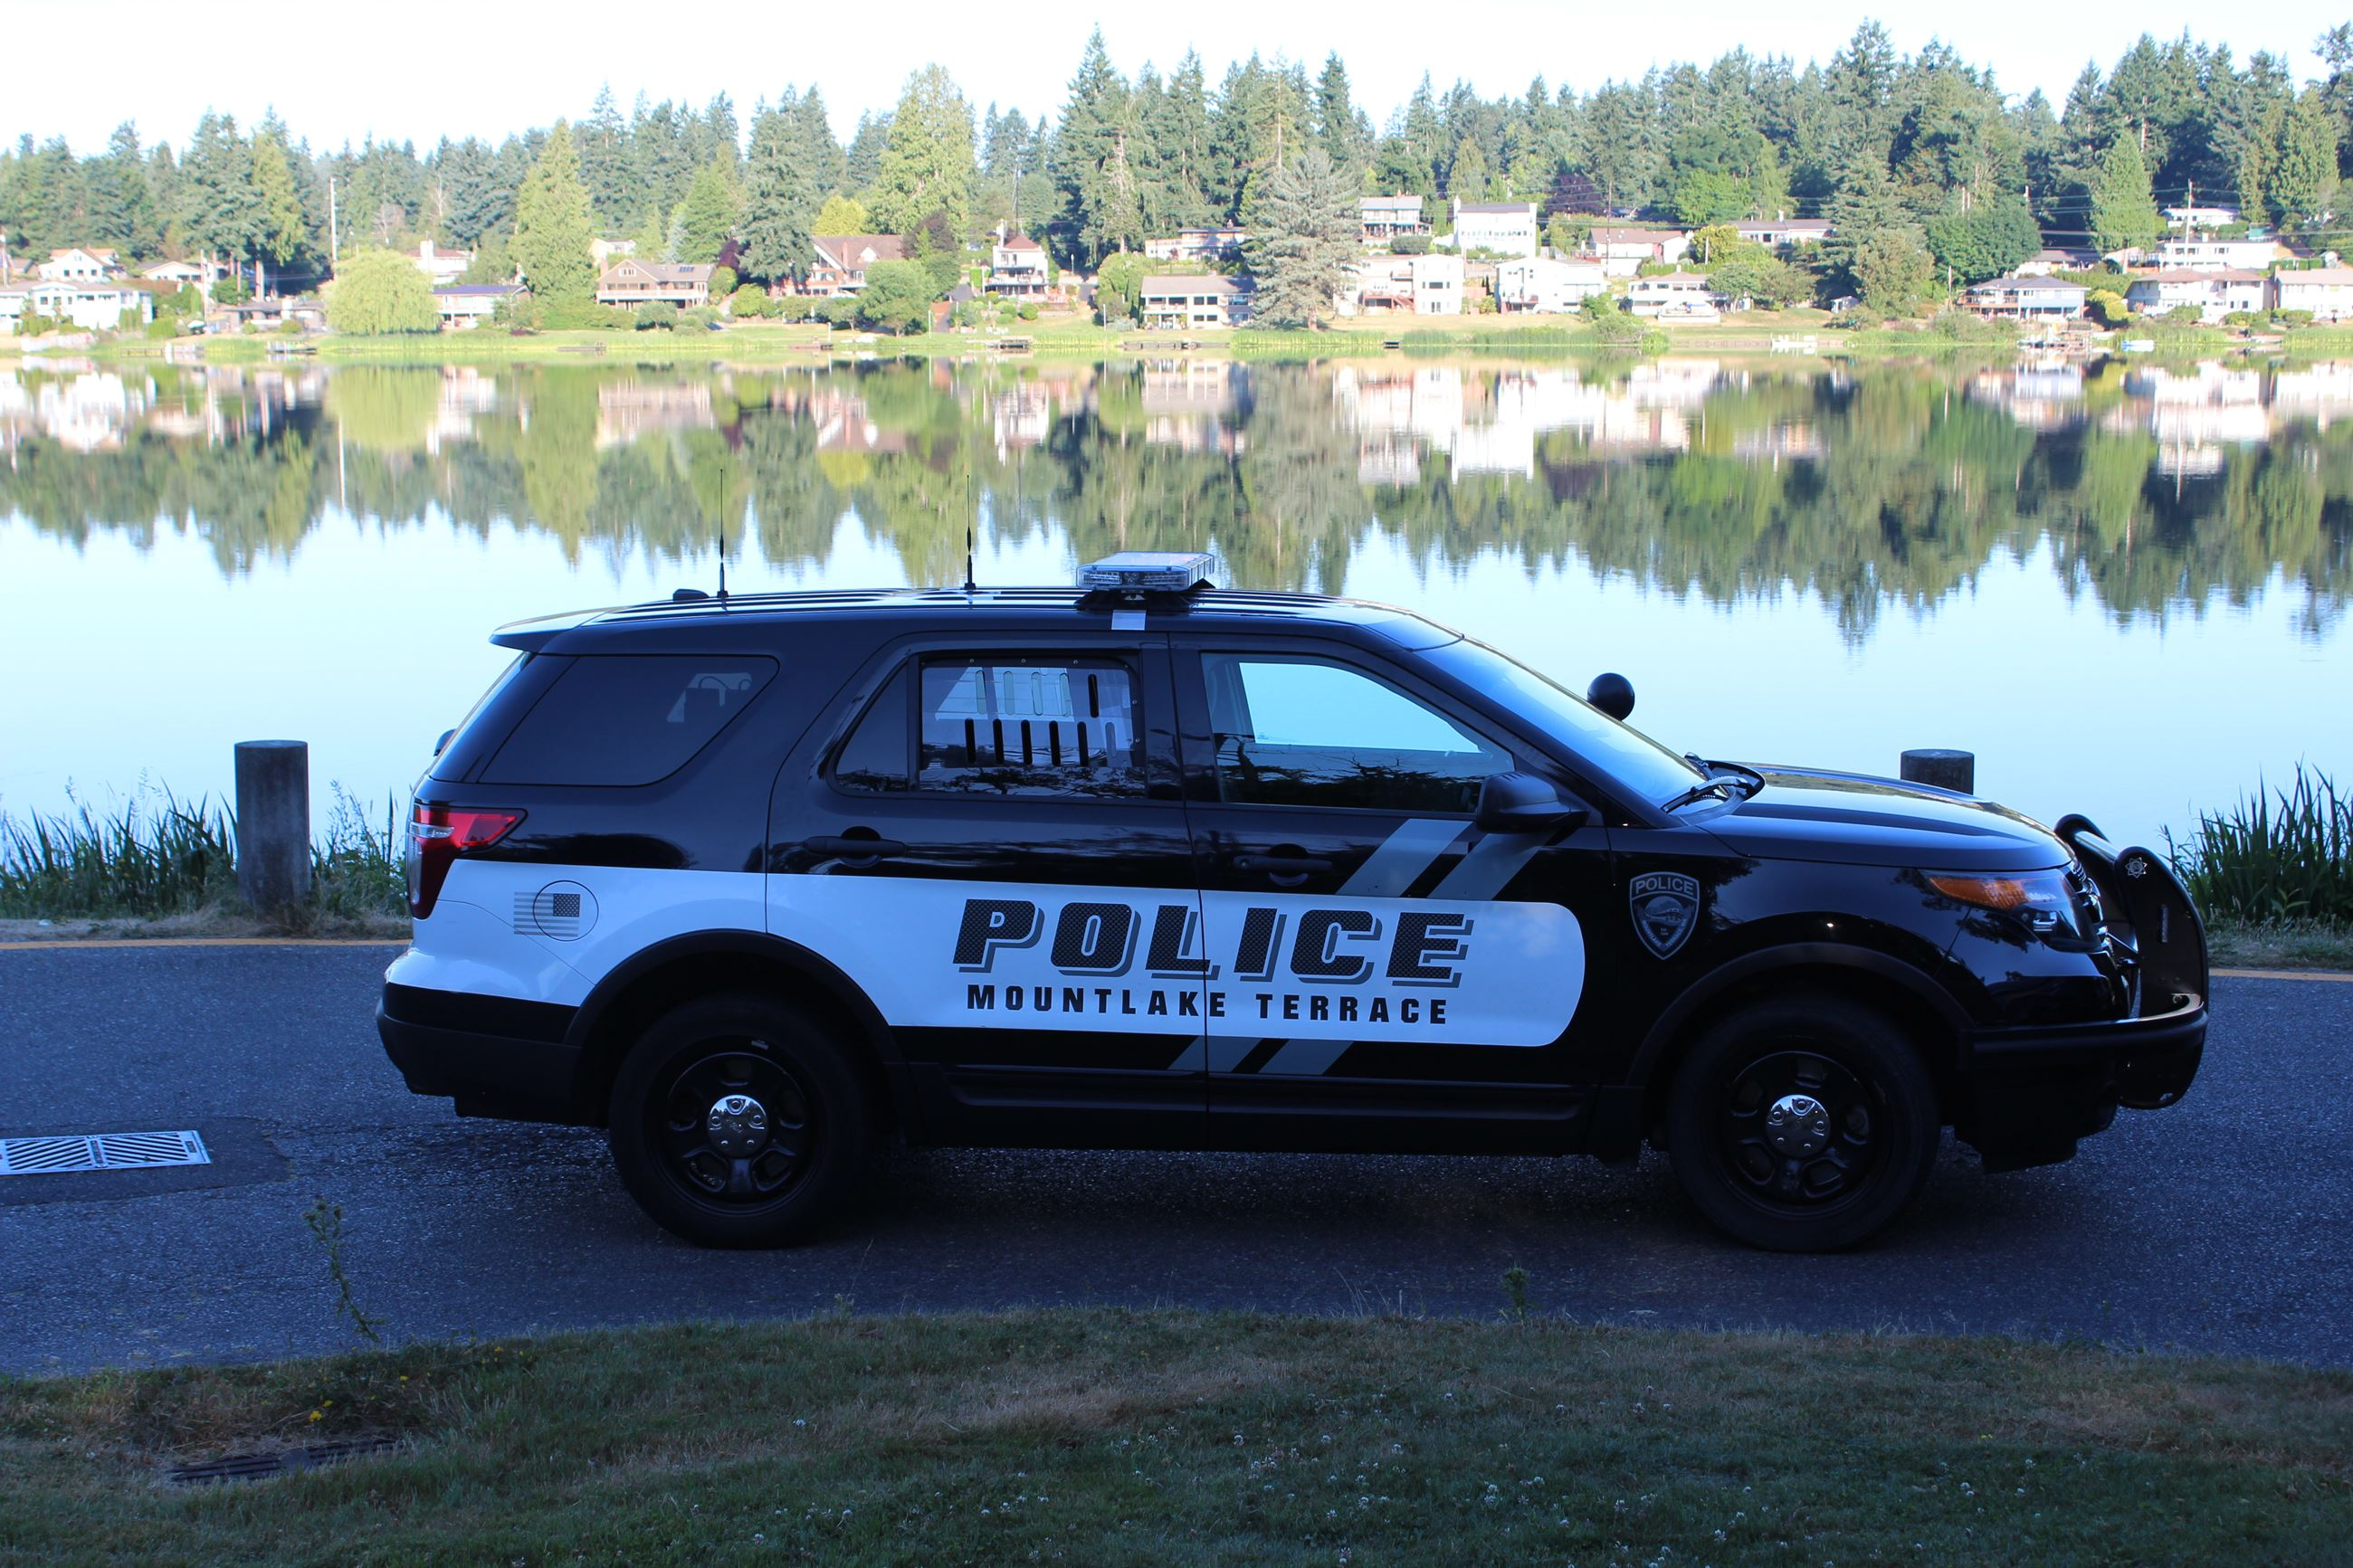 Police Car by Lake Ballinger